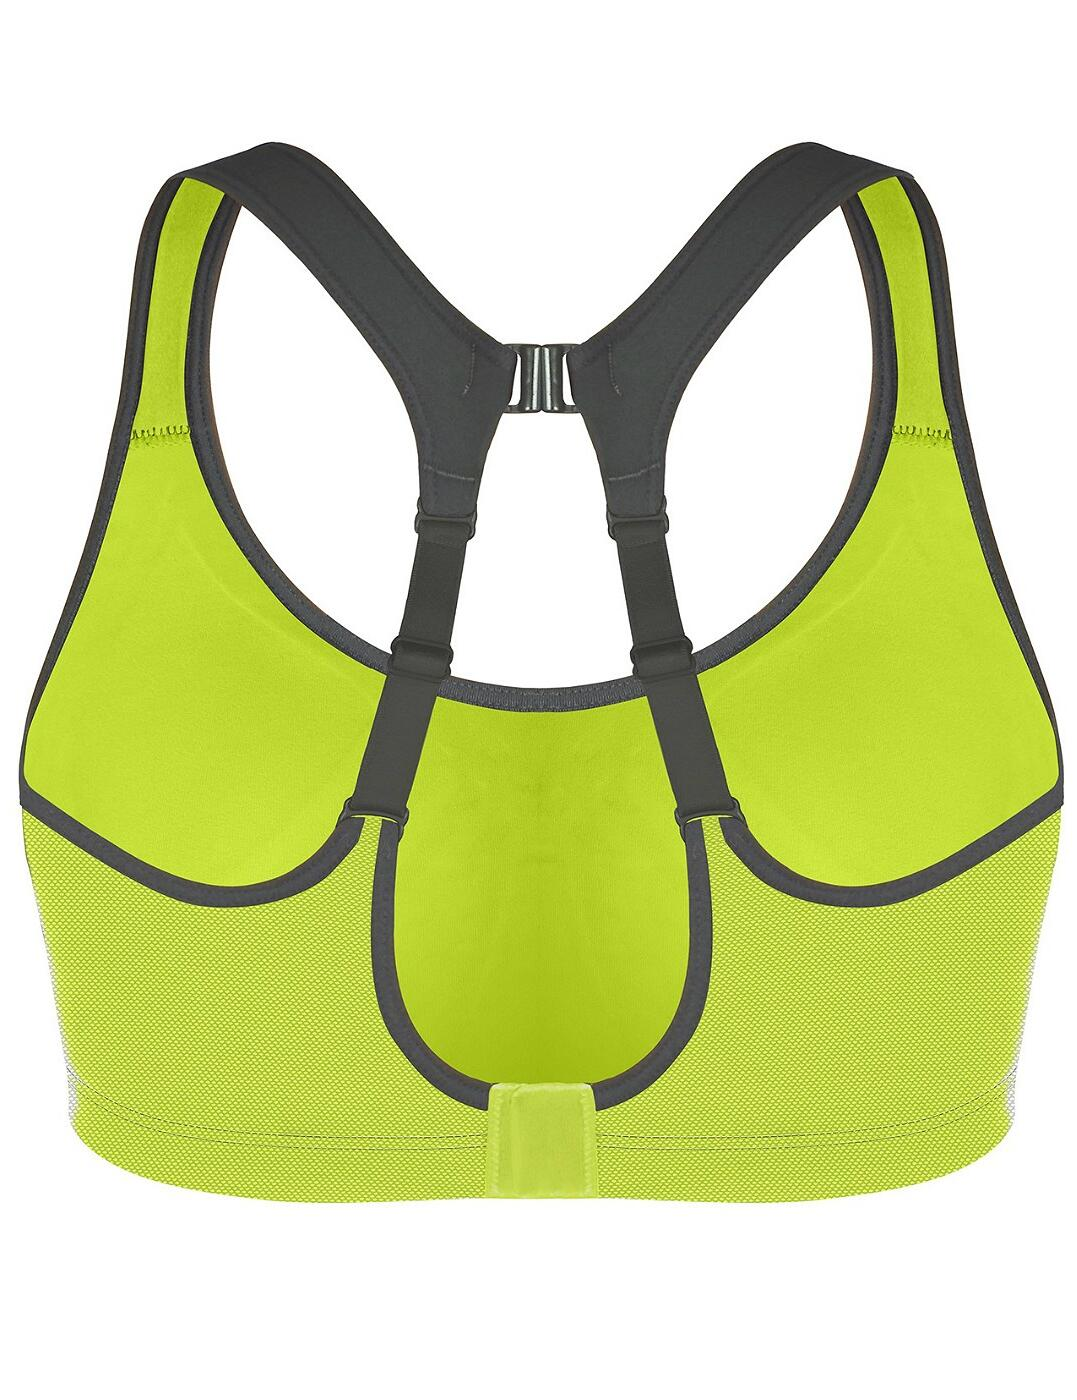 Shock-Absorber-Ultimate-Fly-Sports-Bra-S02Y3-High-Impact-New-Womens-Sportswear thumbnail 7